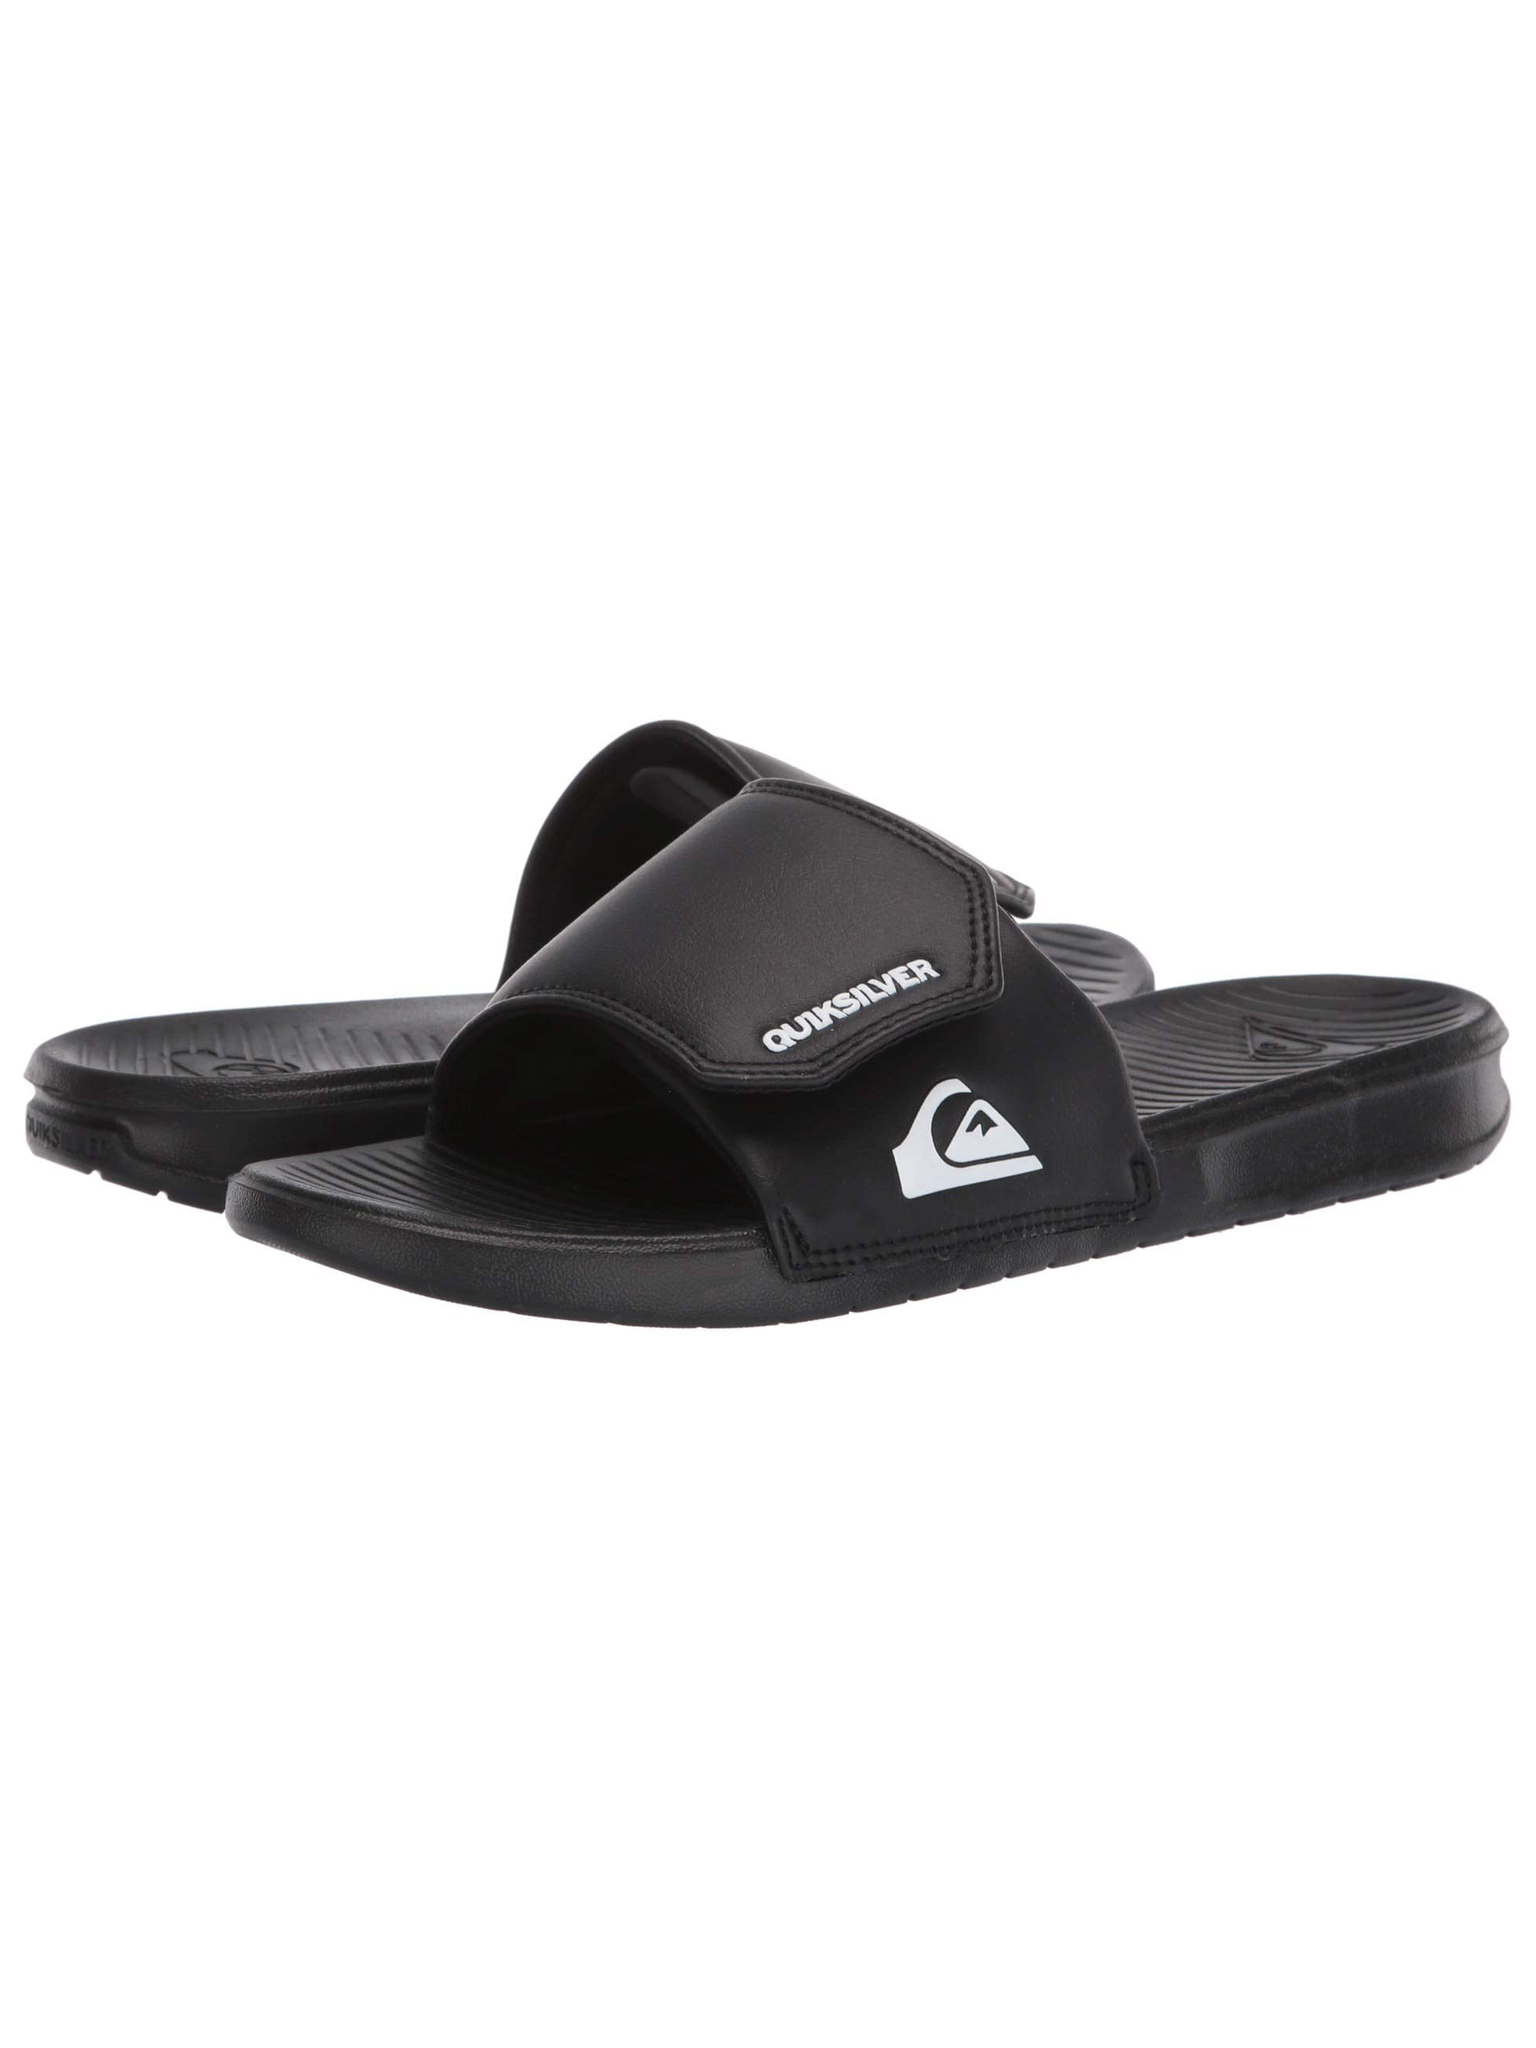 Bright Coast Adjust Sandals